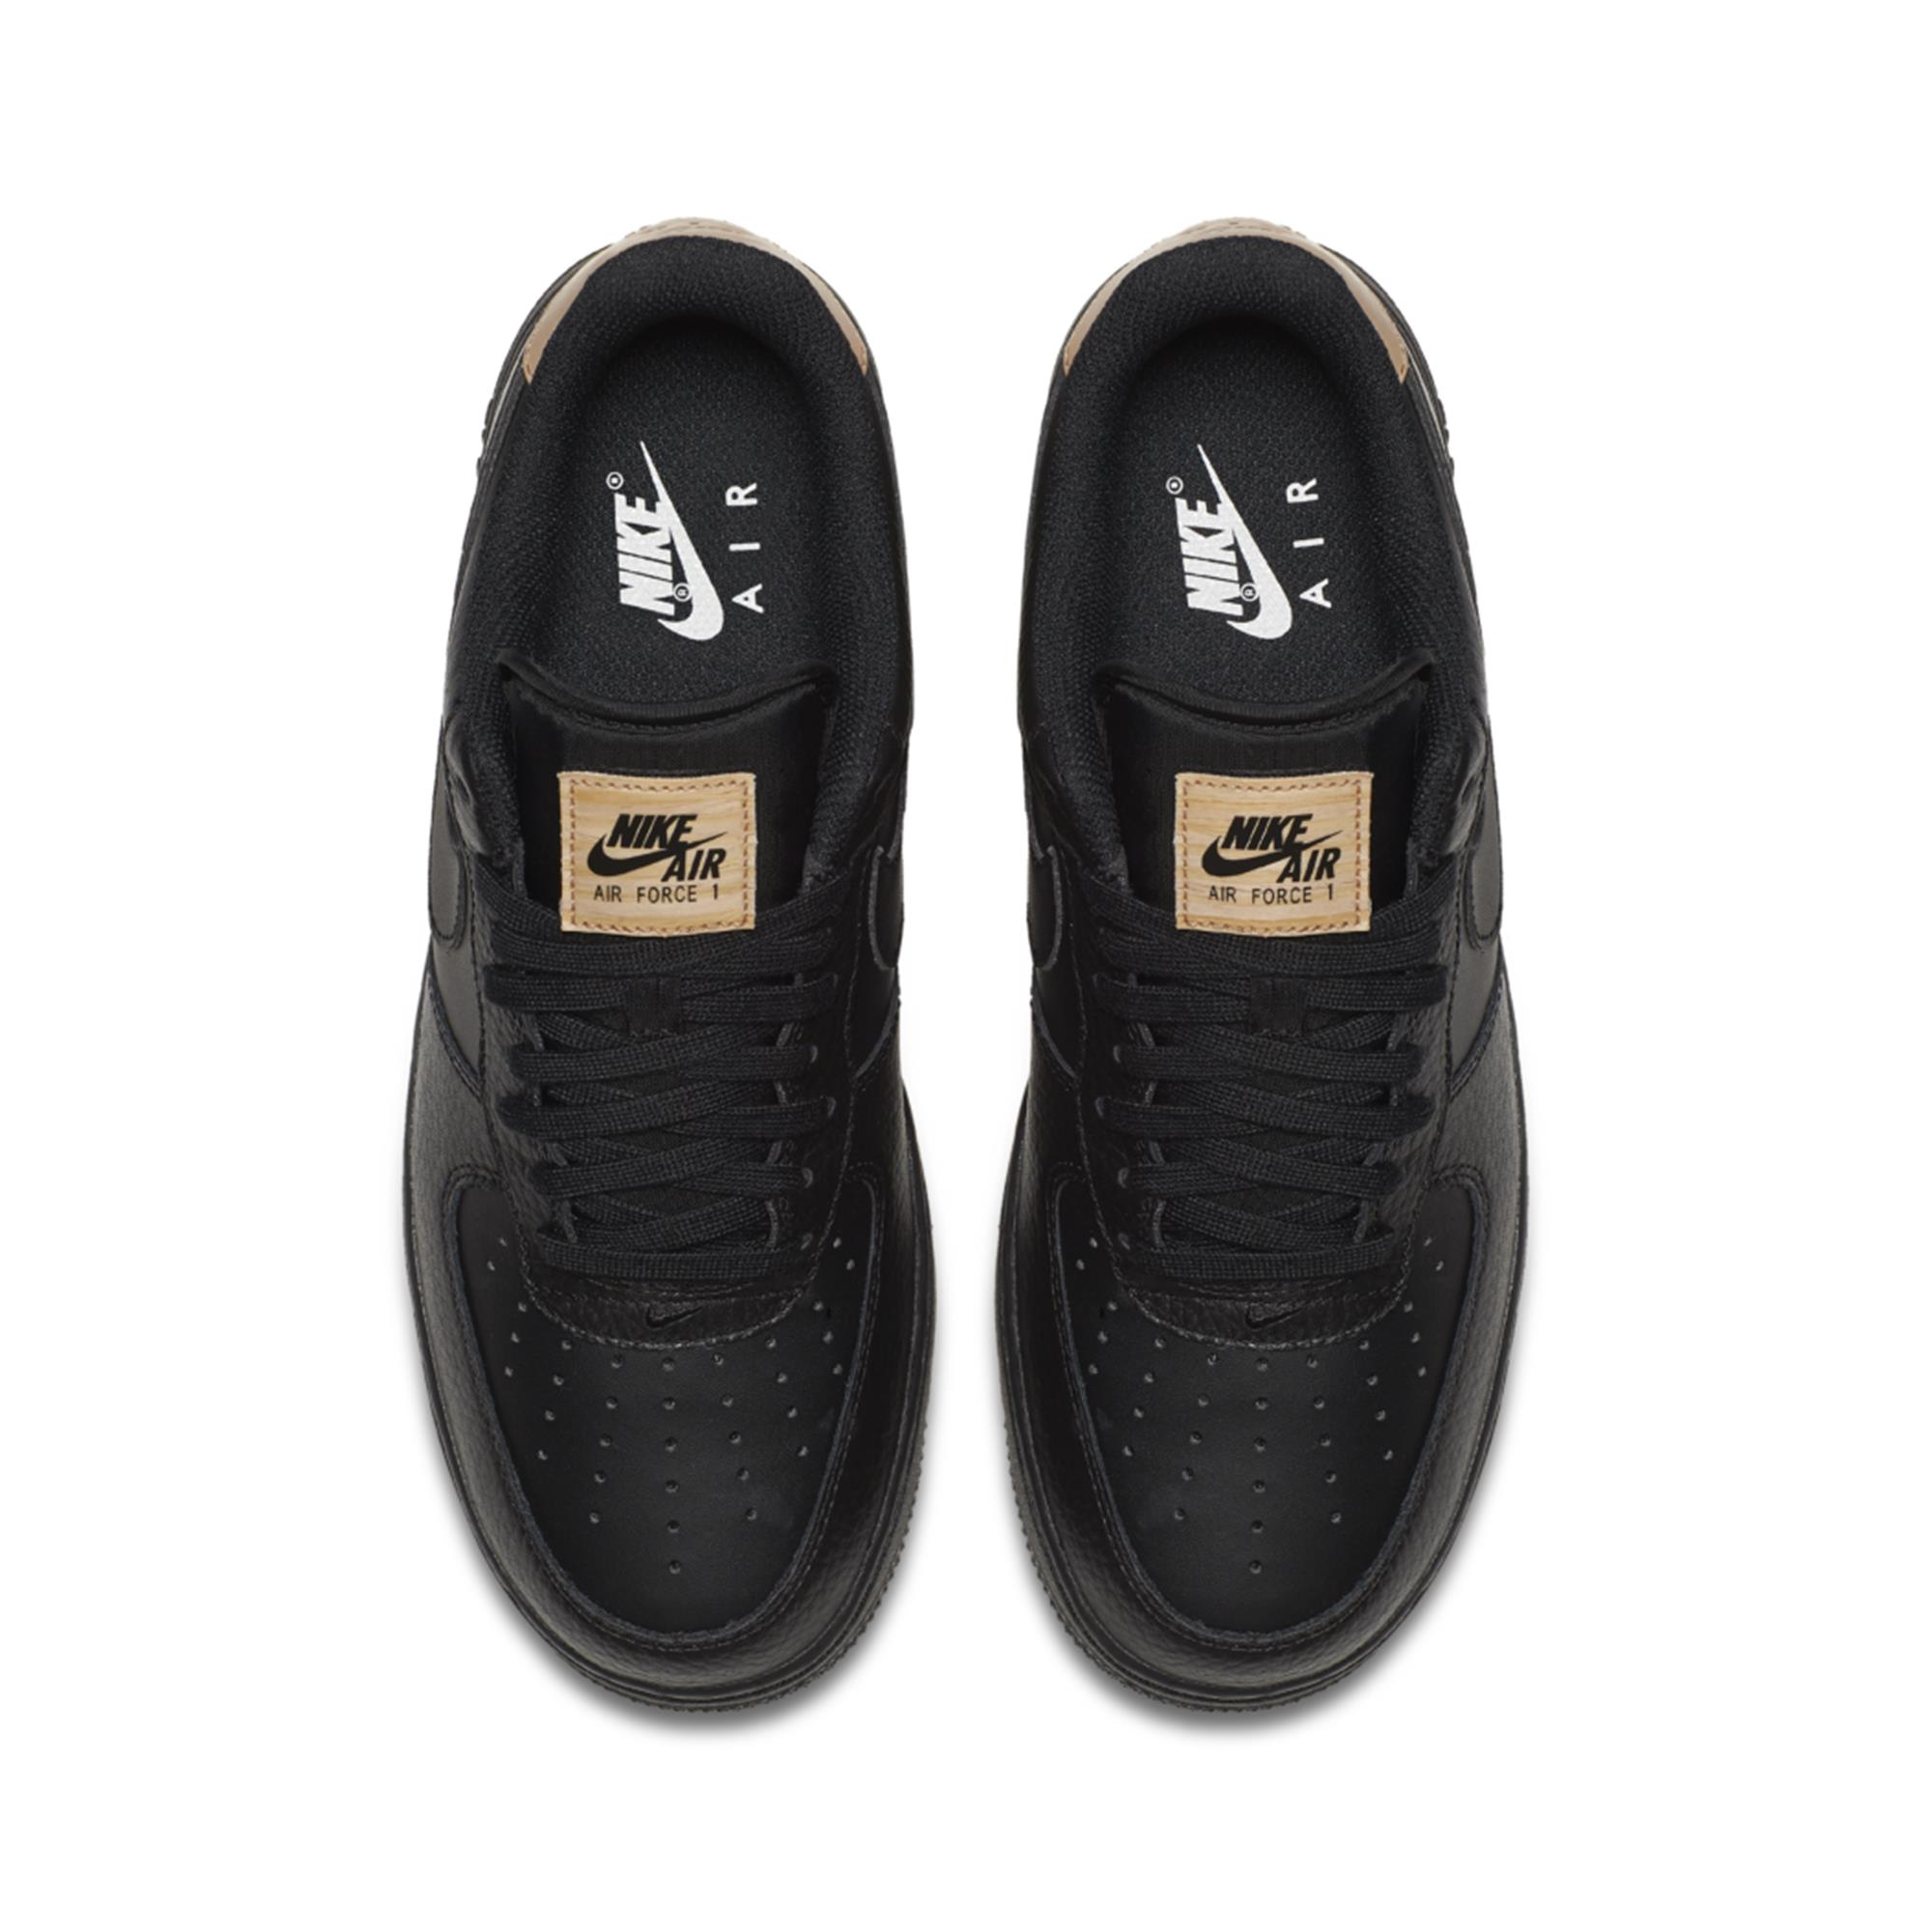 NIKE AIR FORCE 1 07 lv8 PRETO 2.jpg